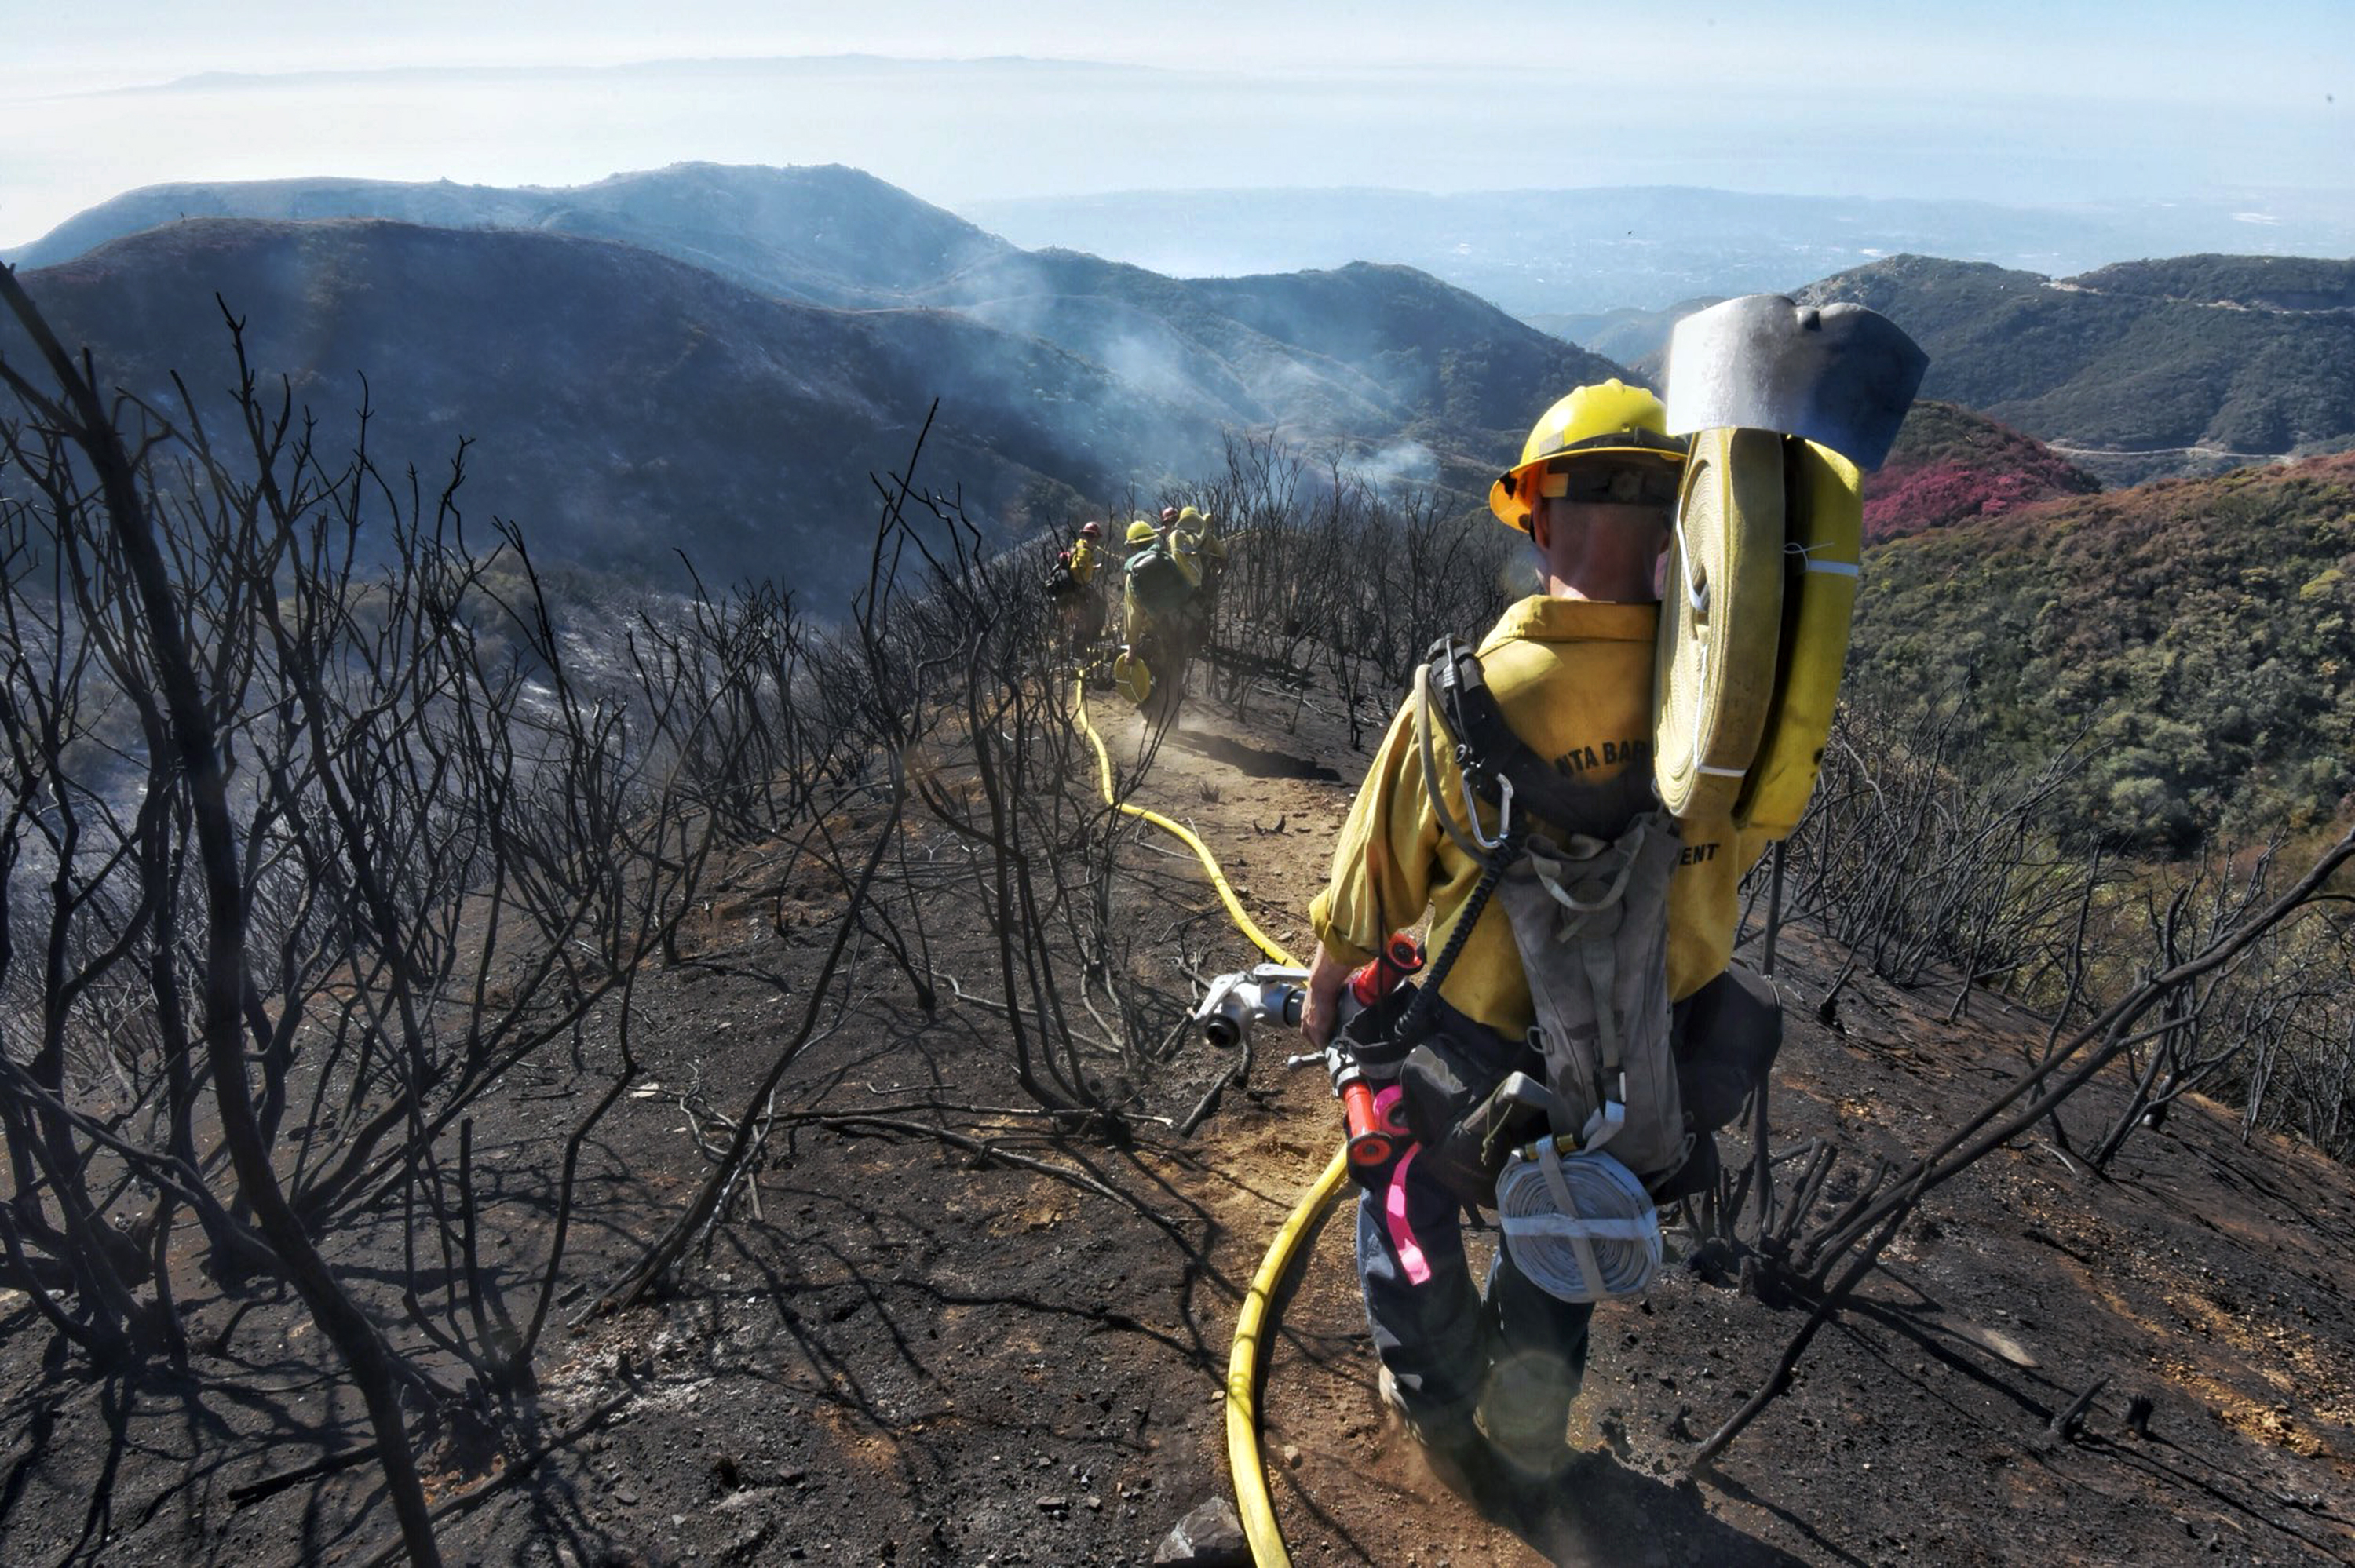 In this photo provided by the Santa Barbara County Fire Department, Santa Barbara County Firefighters haul dozens of pounds of hose and equipment down steep terrain below E. Camino Cielo to root out and extinguish smoldering hot spots in Santa Barbar...